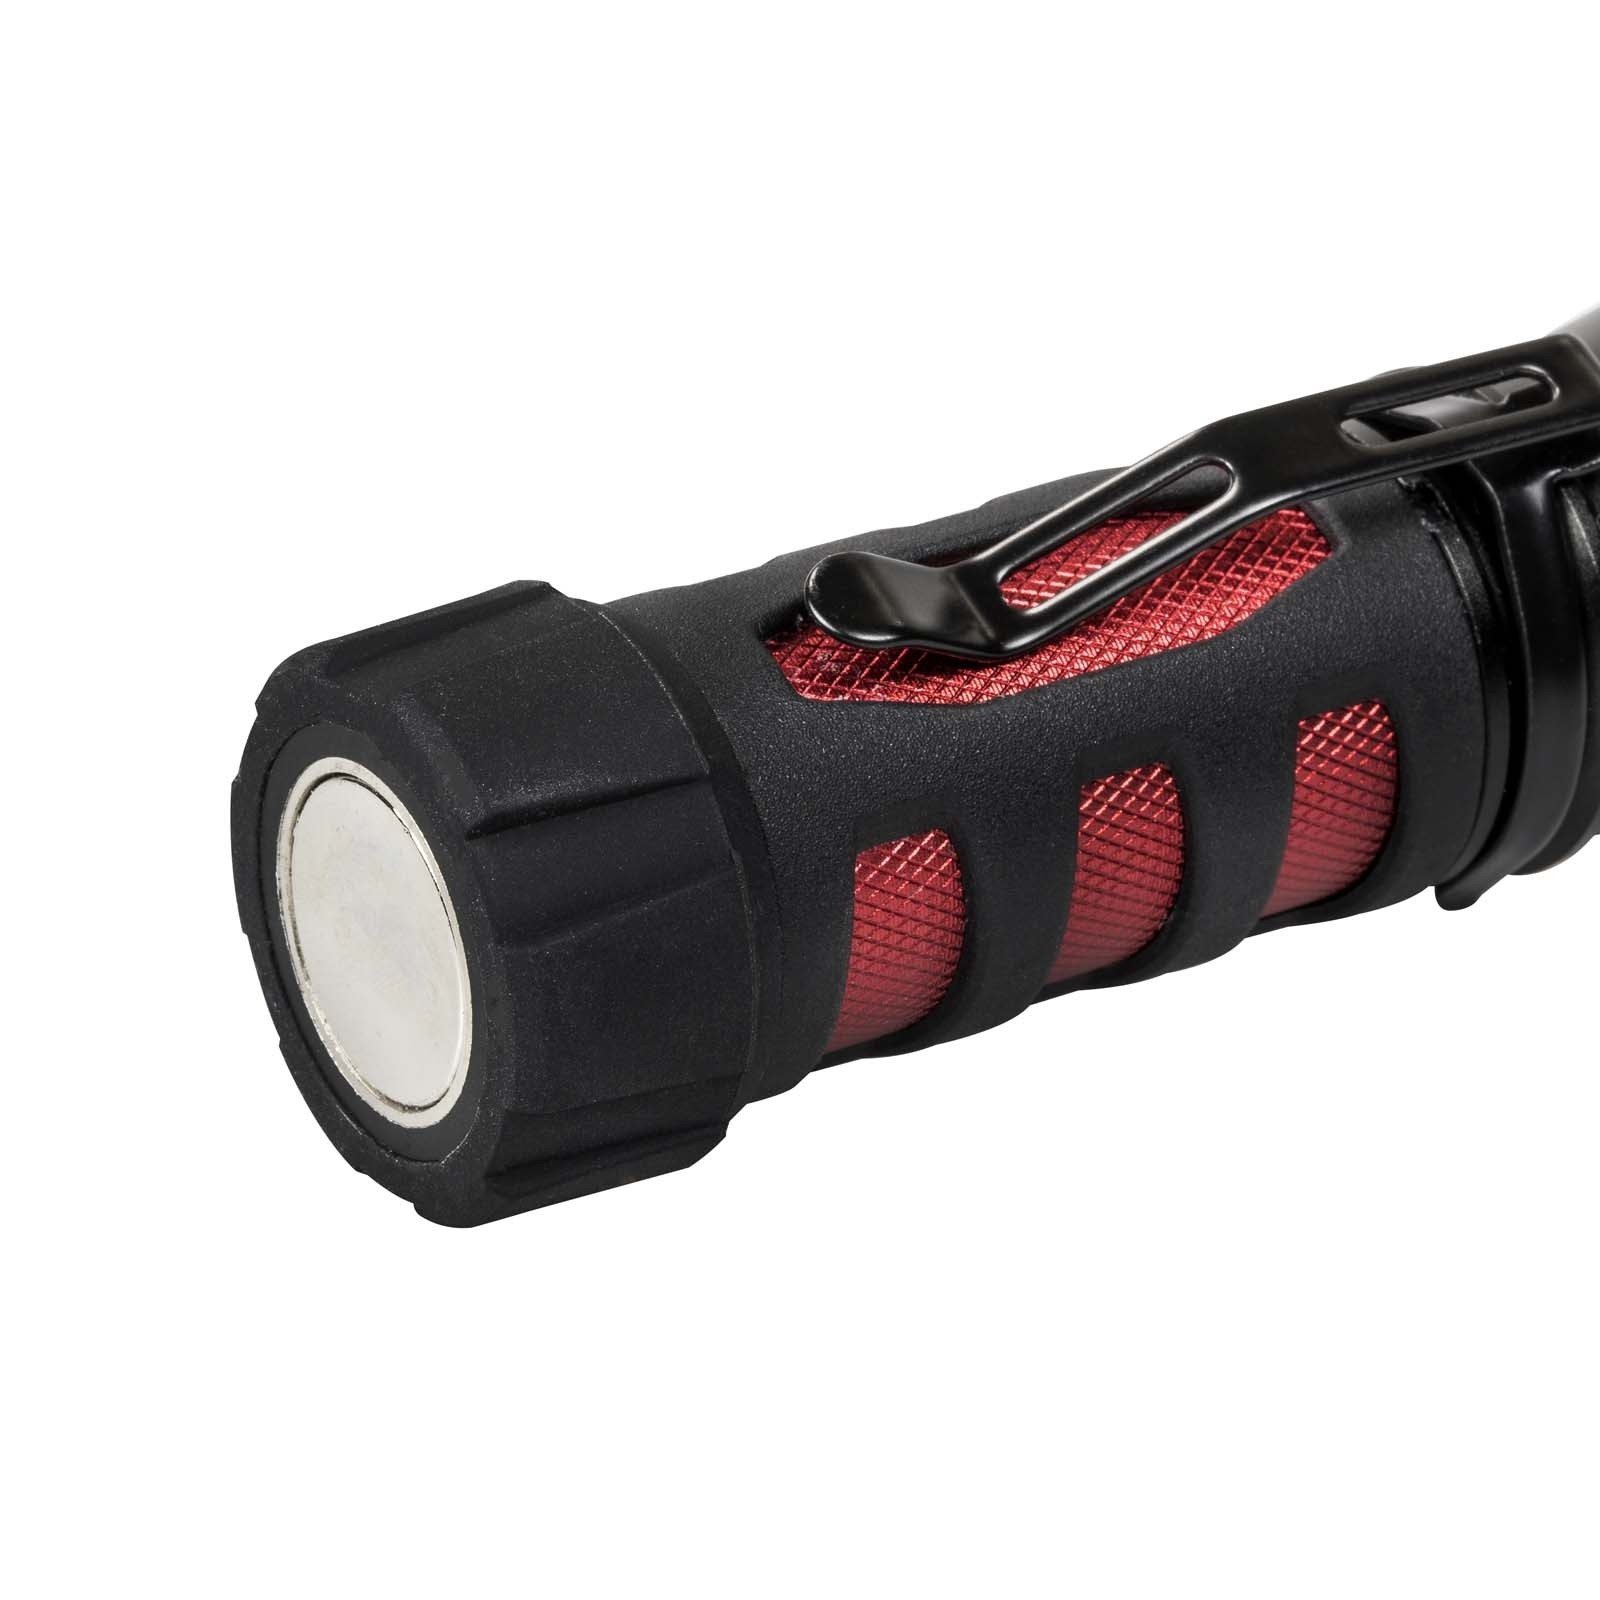 Flash Light Ultra Hd Series Cob Swivel Flashlight Area Light